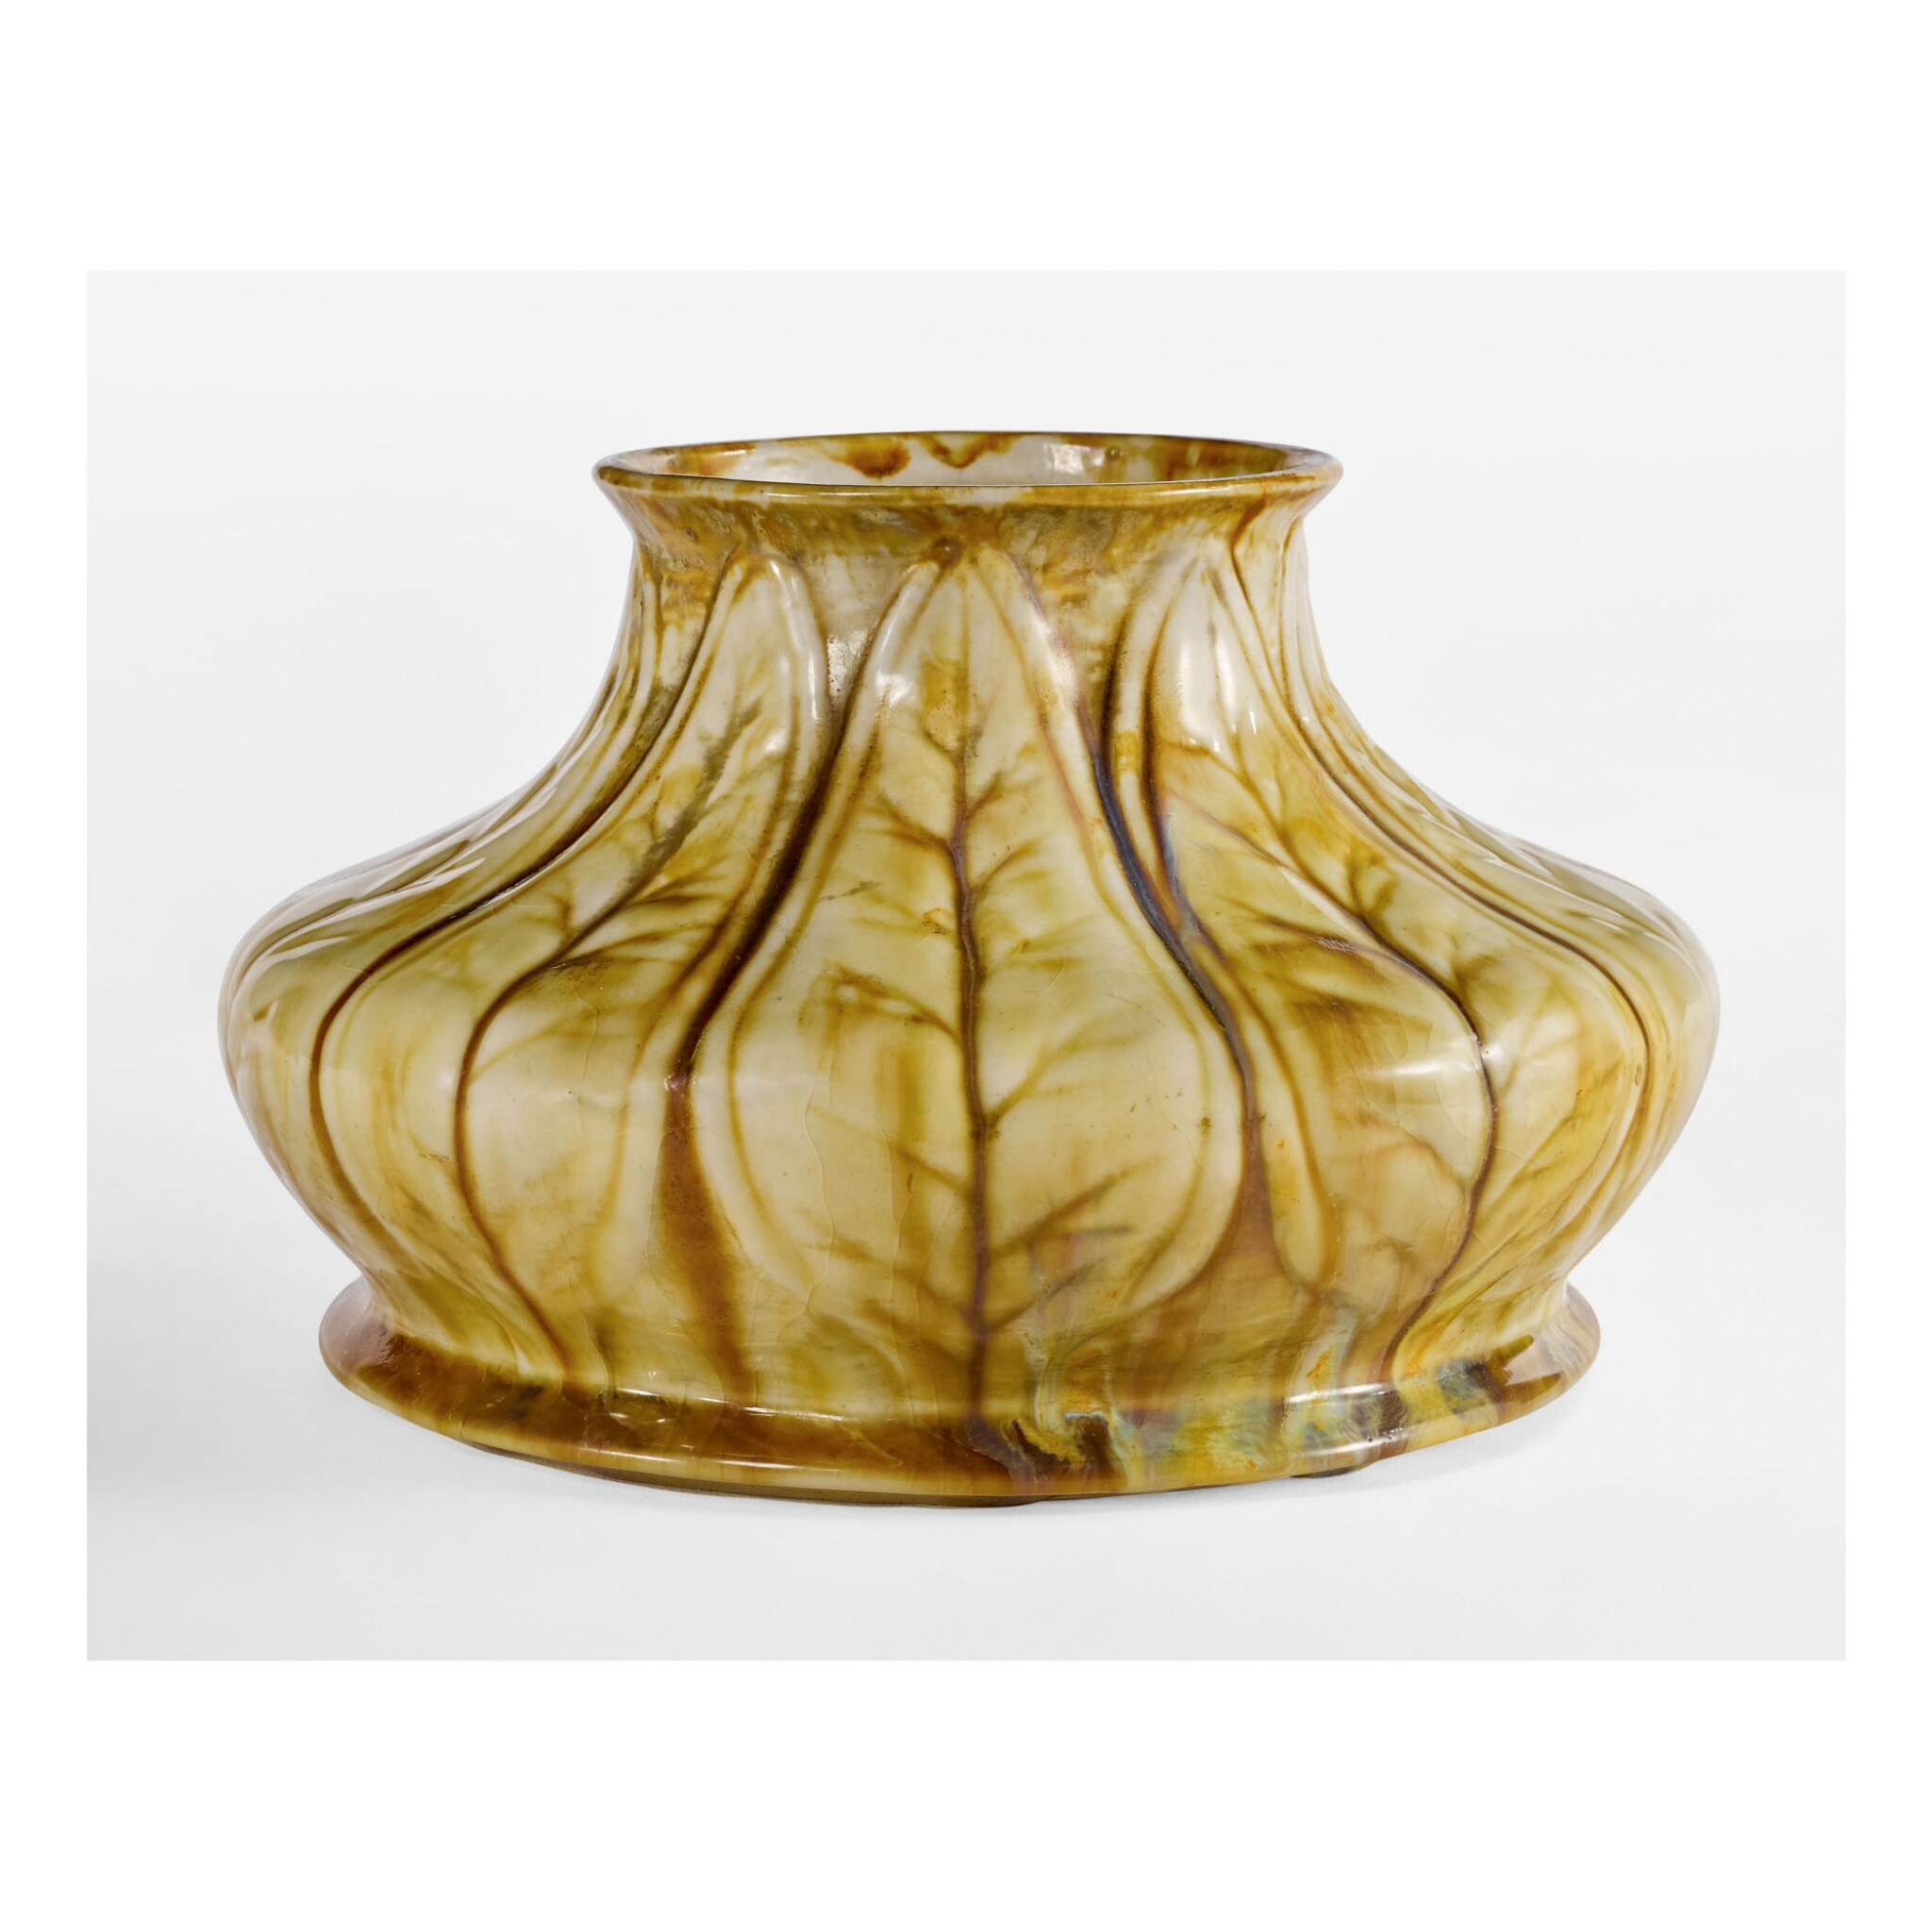 TIFFANY STUDIOS | POTTERY VASE FROM THE COLLECTION OF LOUIS COMFORT TIFFANY